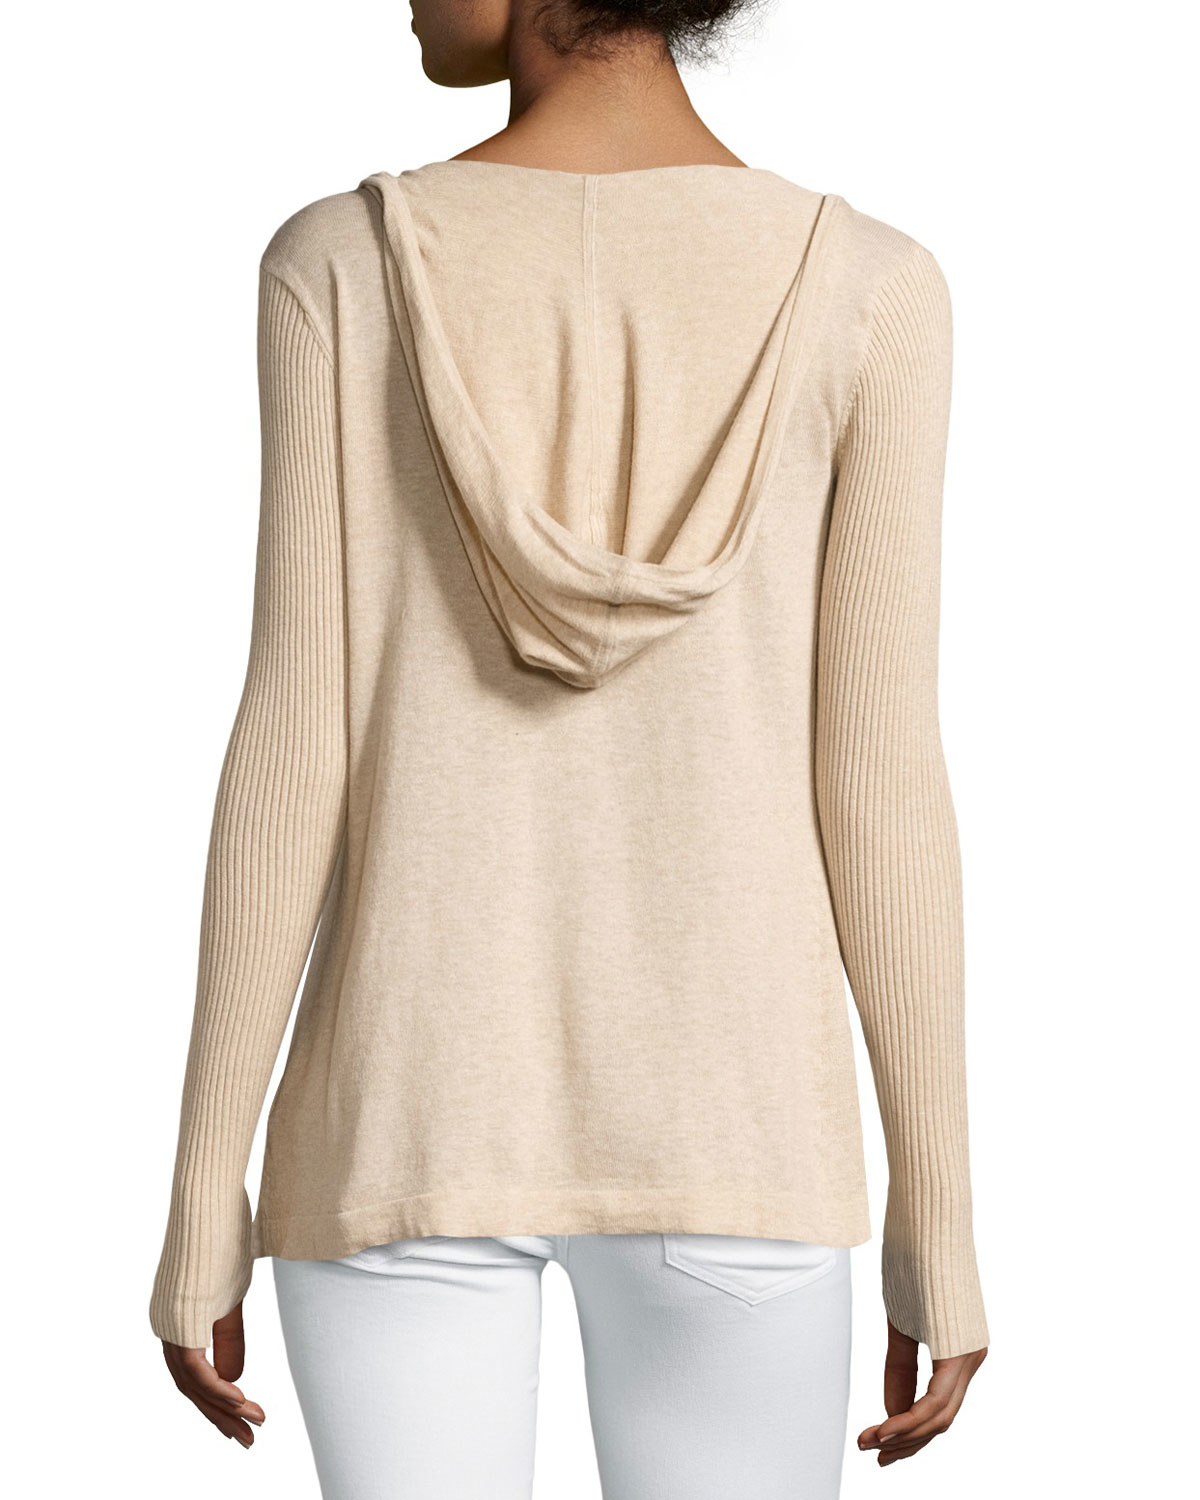 Minnie rose Cotton Hooded Open-front Duster Cardigan in Natural   Lyst